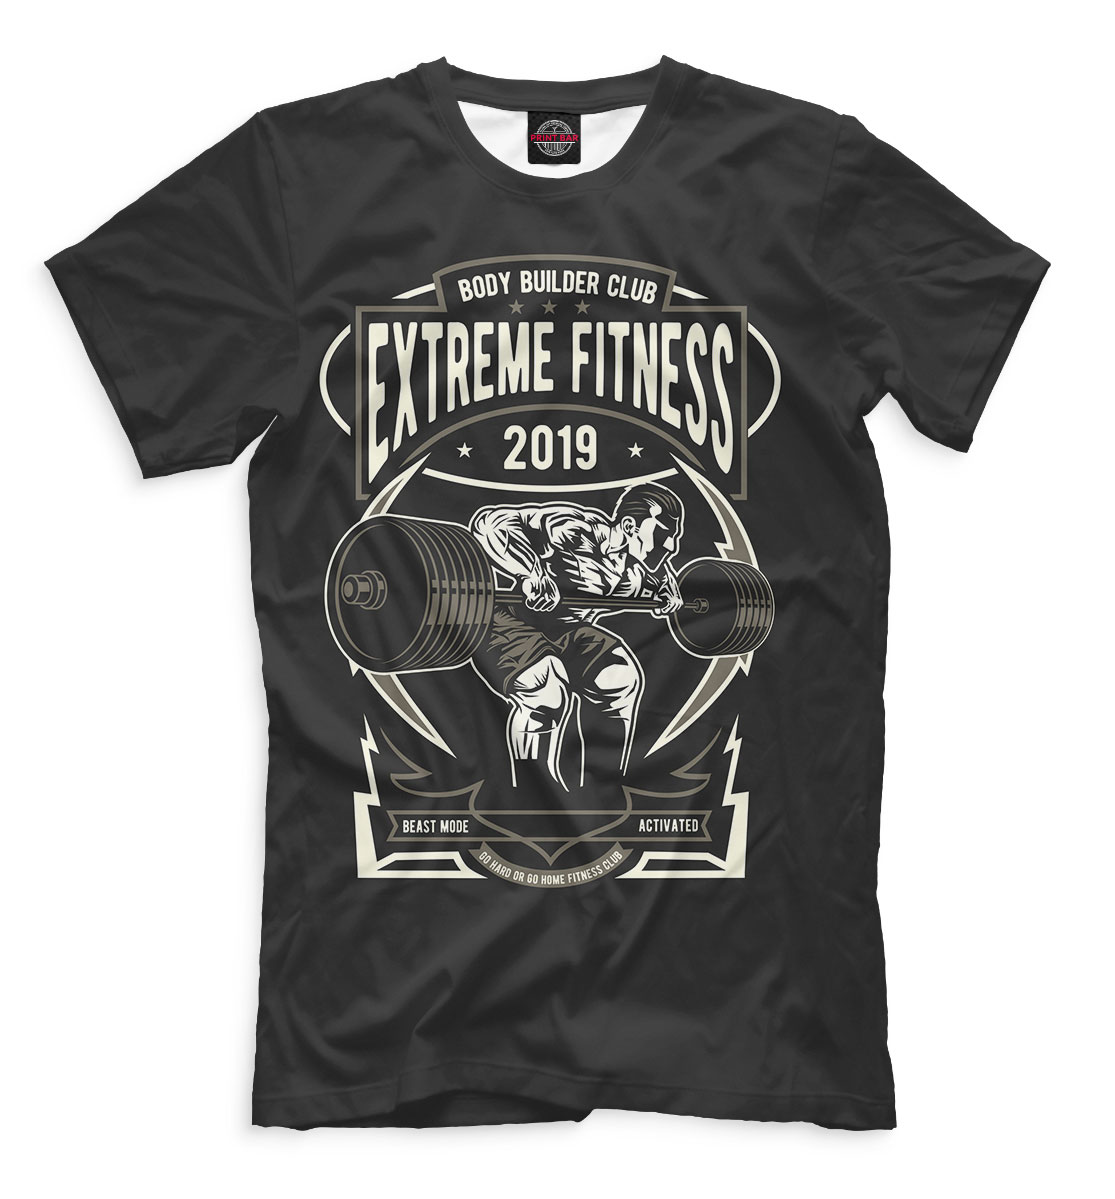 Body Builder Club Extreme Fitness 2019